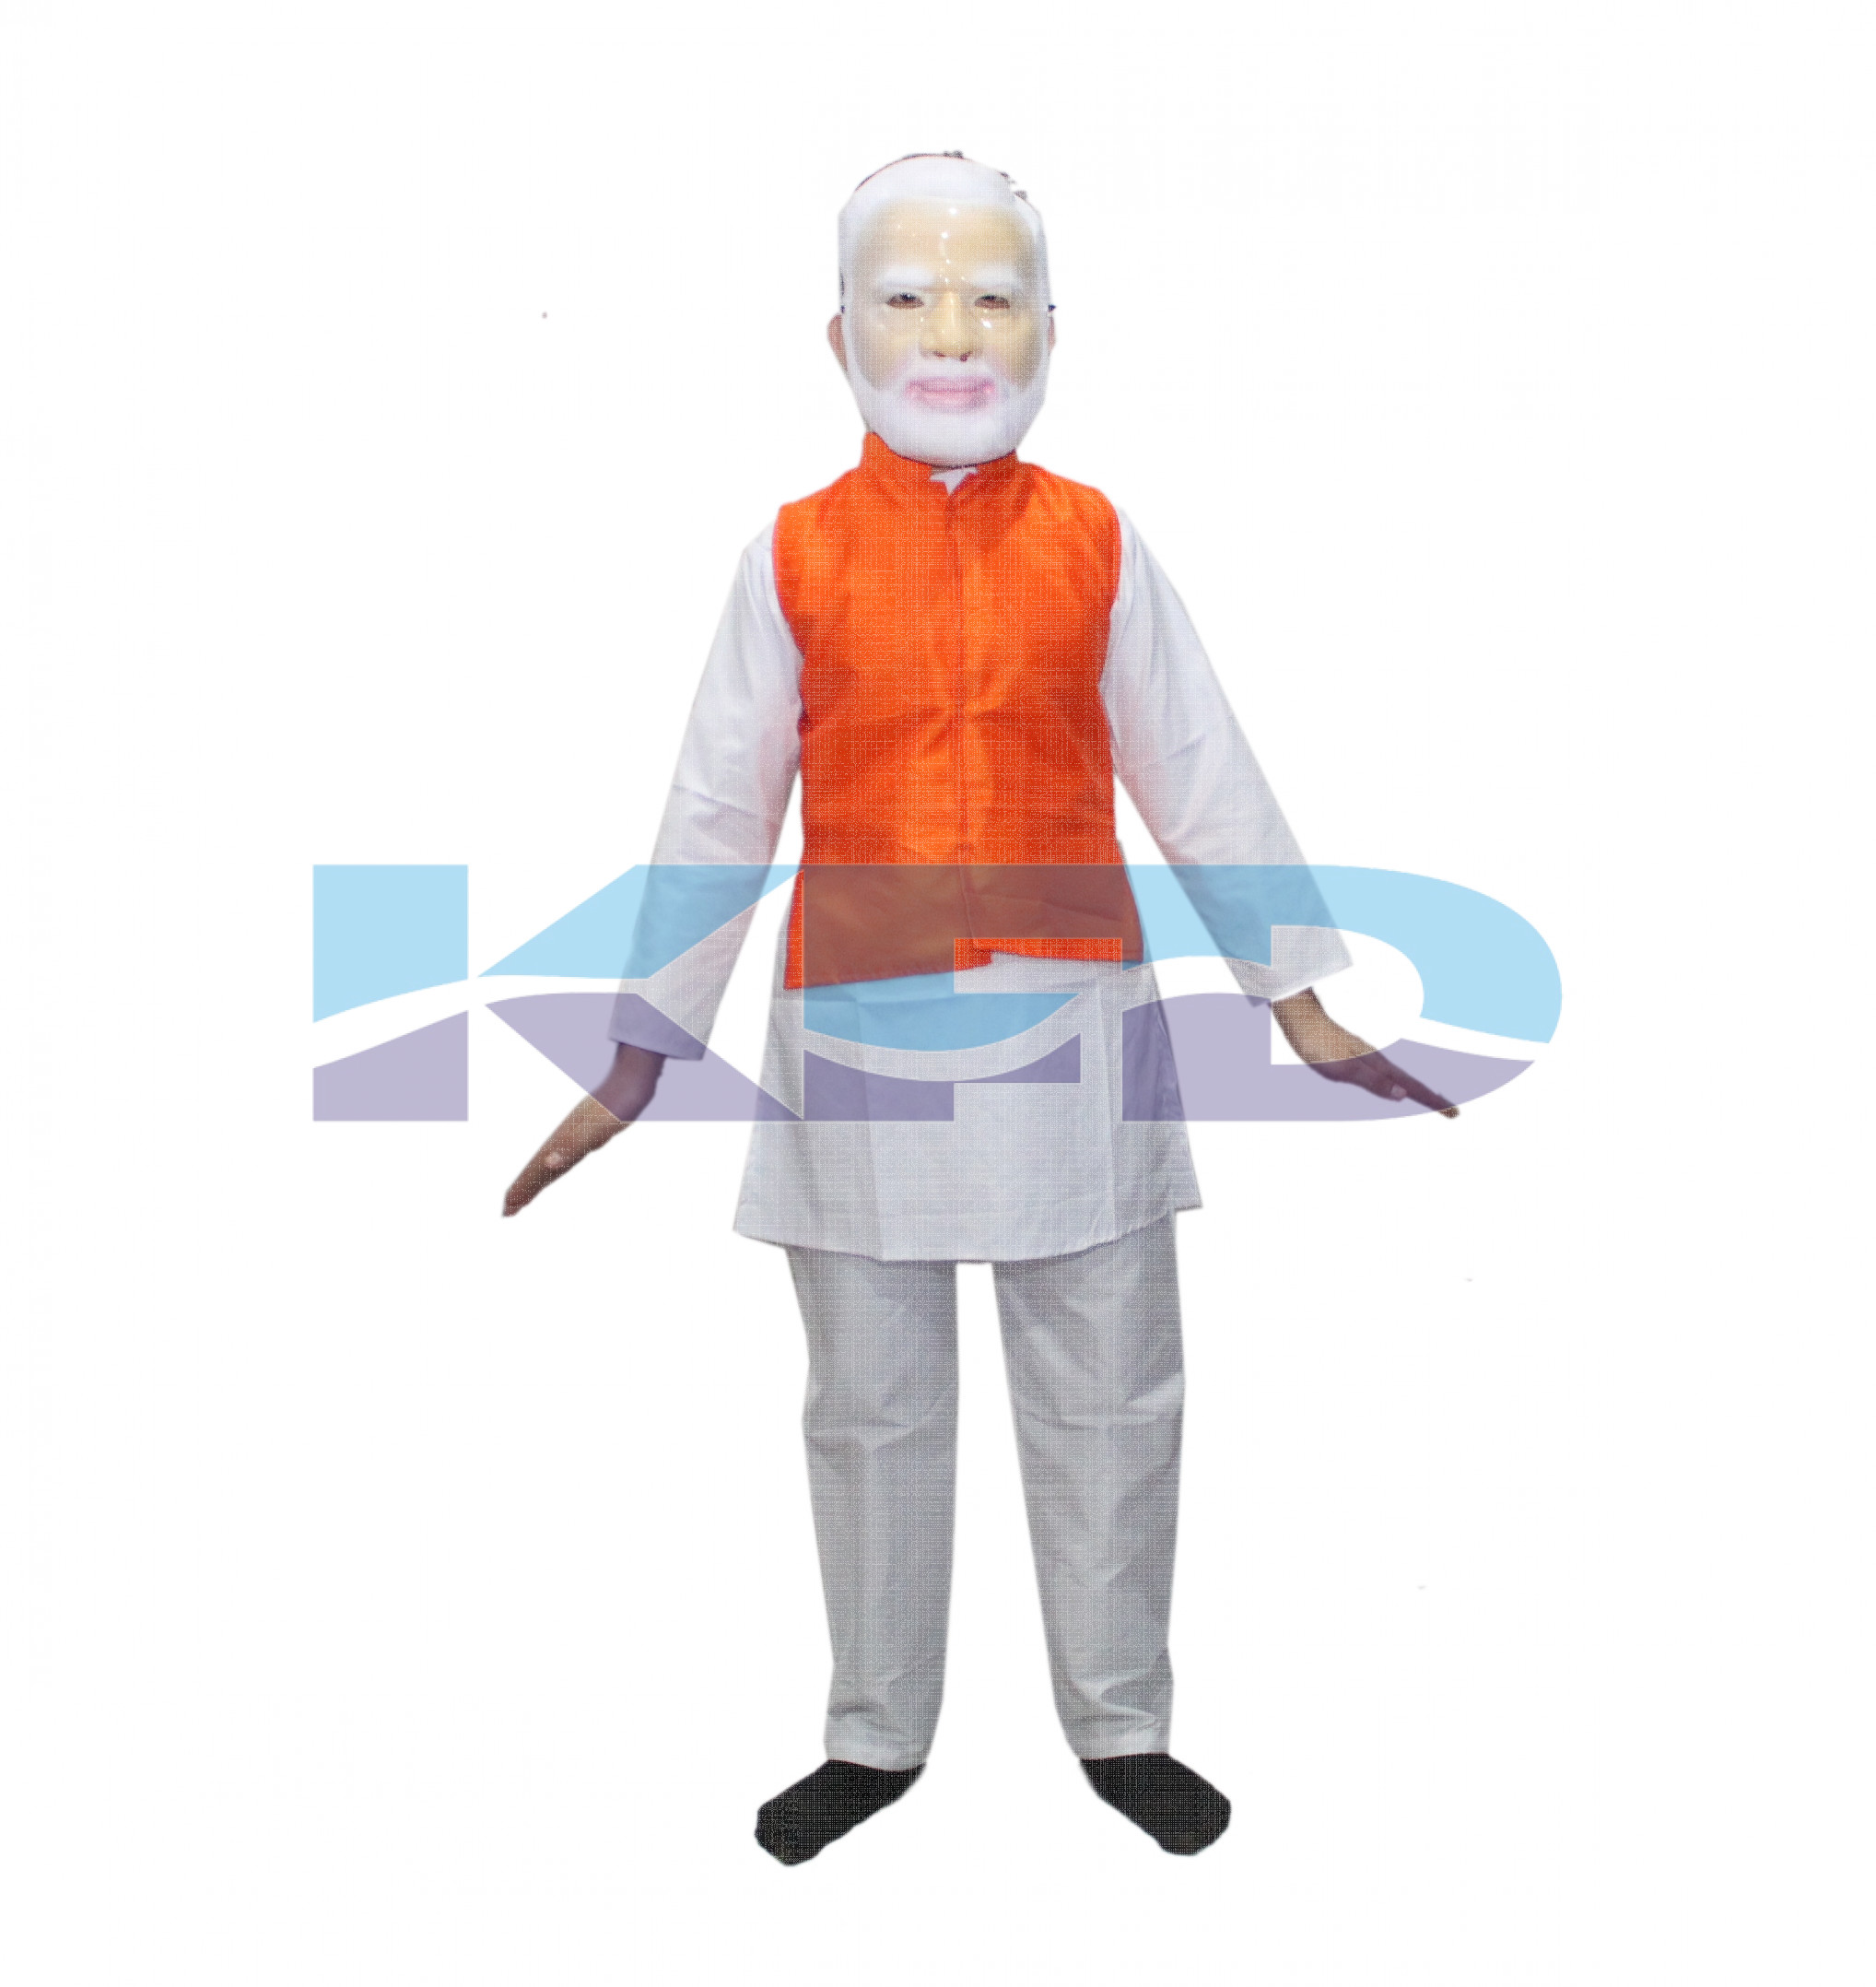 Modi Fancy Dress For Kids/National Hero/freedom figter Costume For Kids independence Day/Republic Day/Annual function/Theme party/Competition/Stage Shows Dress